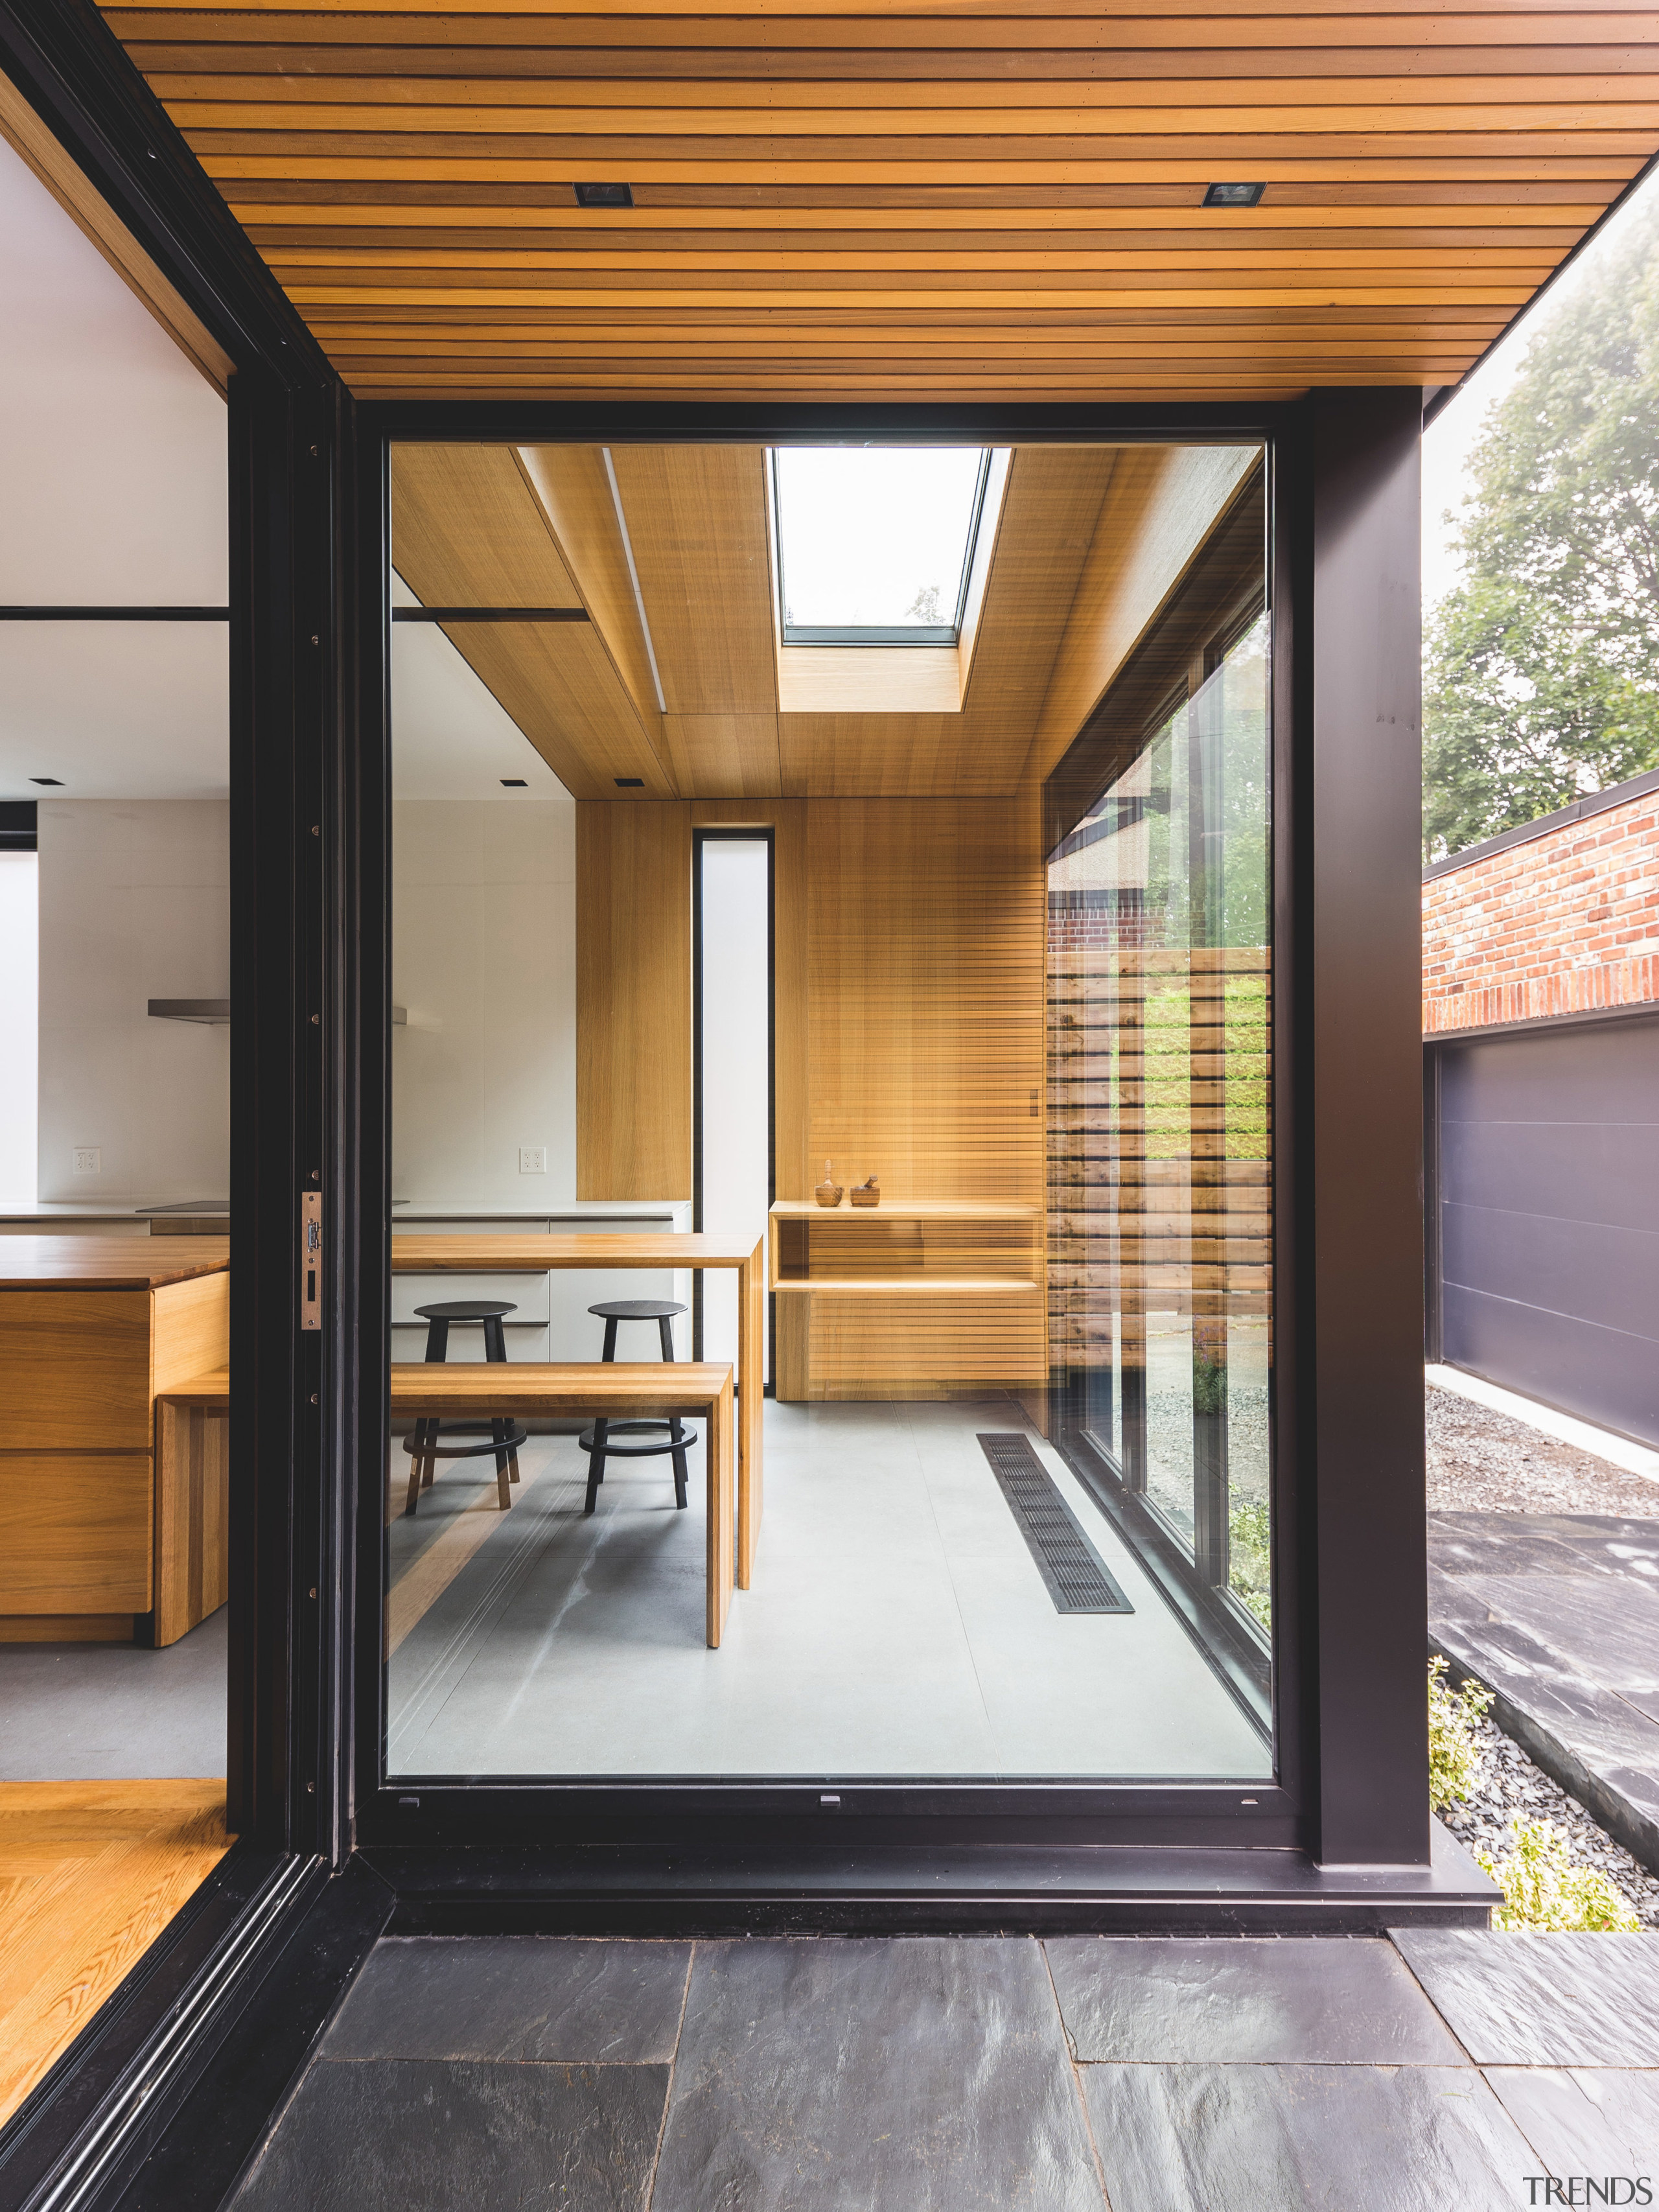 An extension at the back of this 1930s architecture, door, floor, house, window